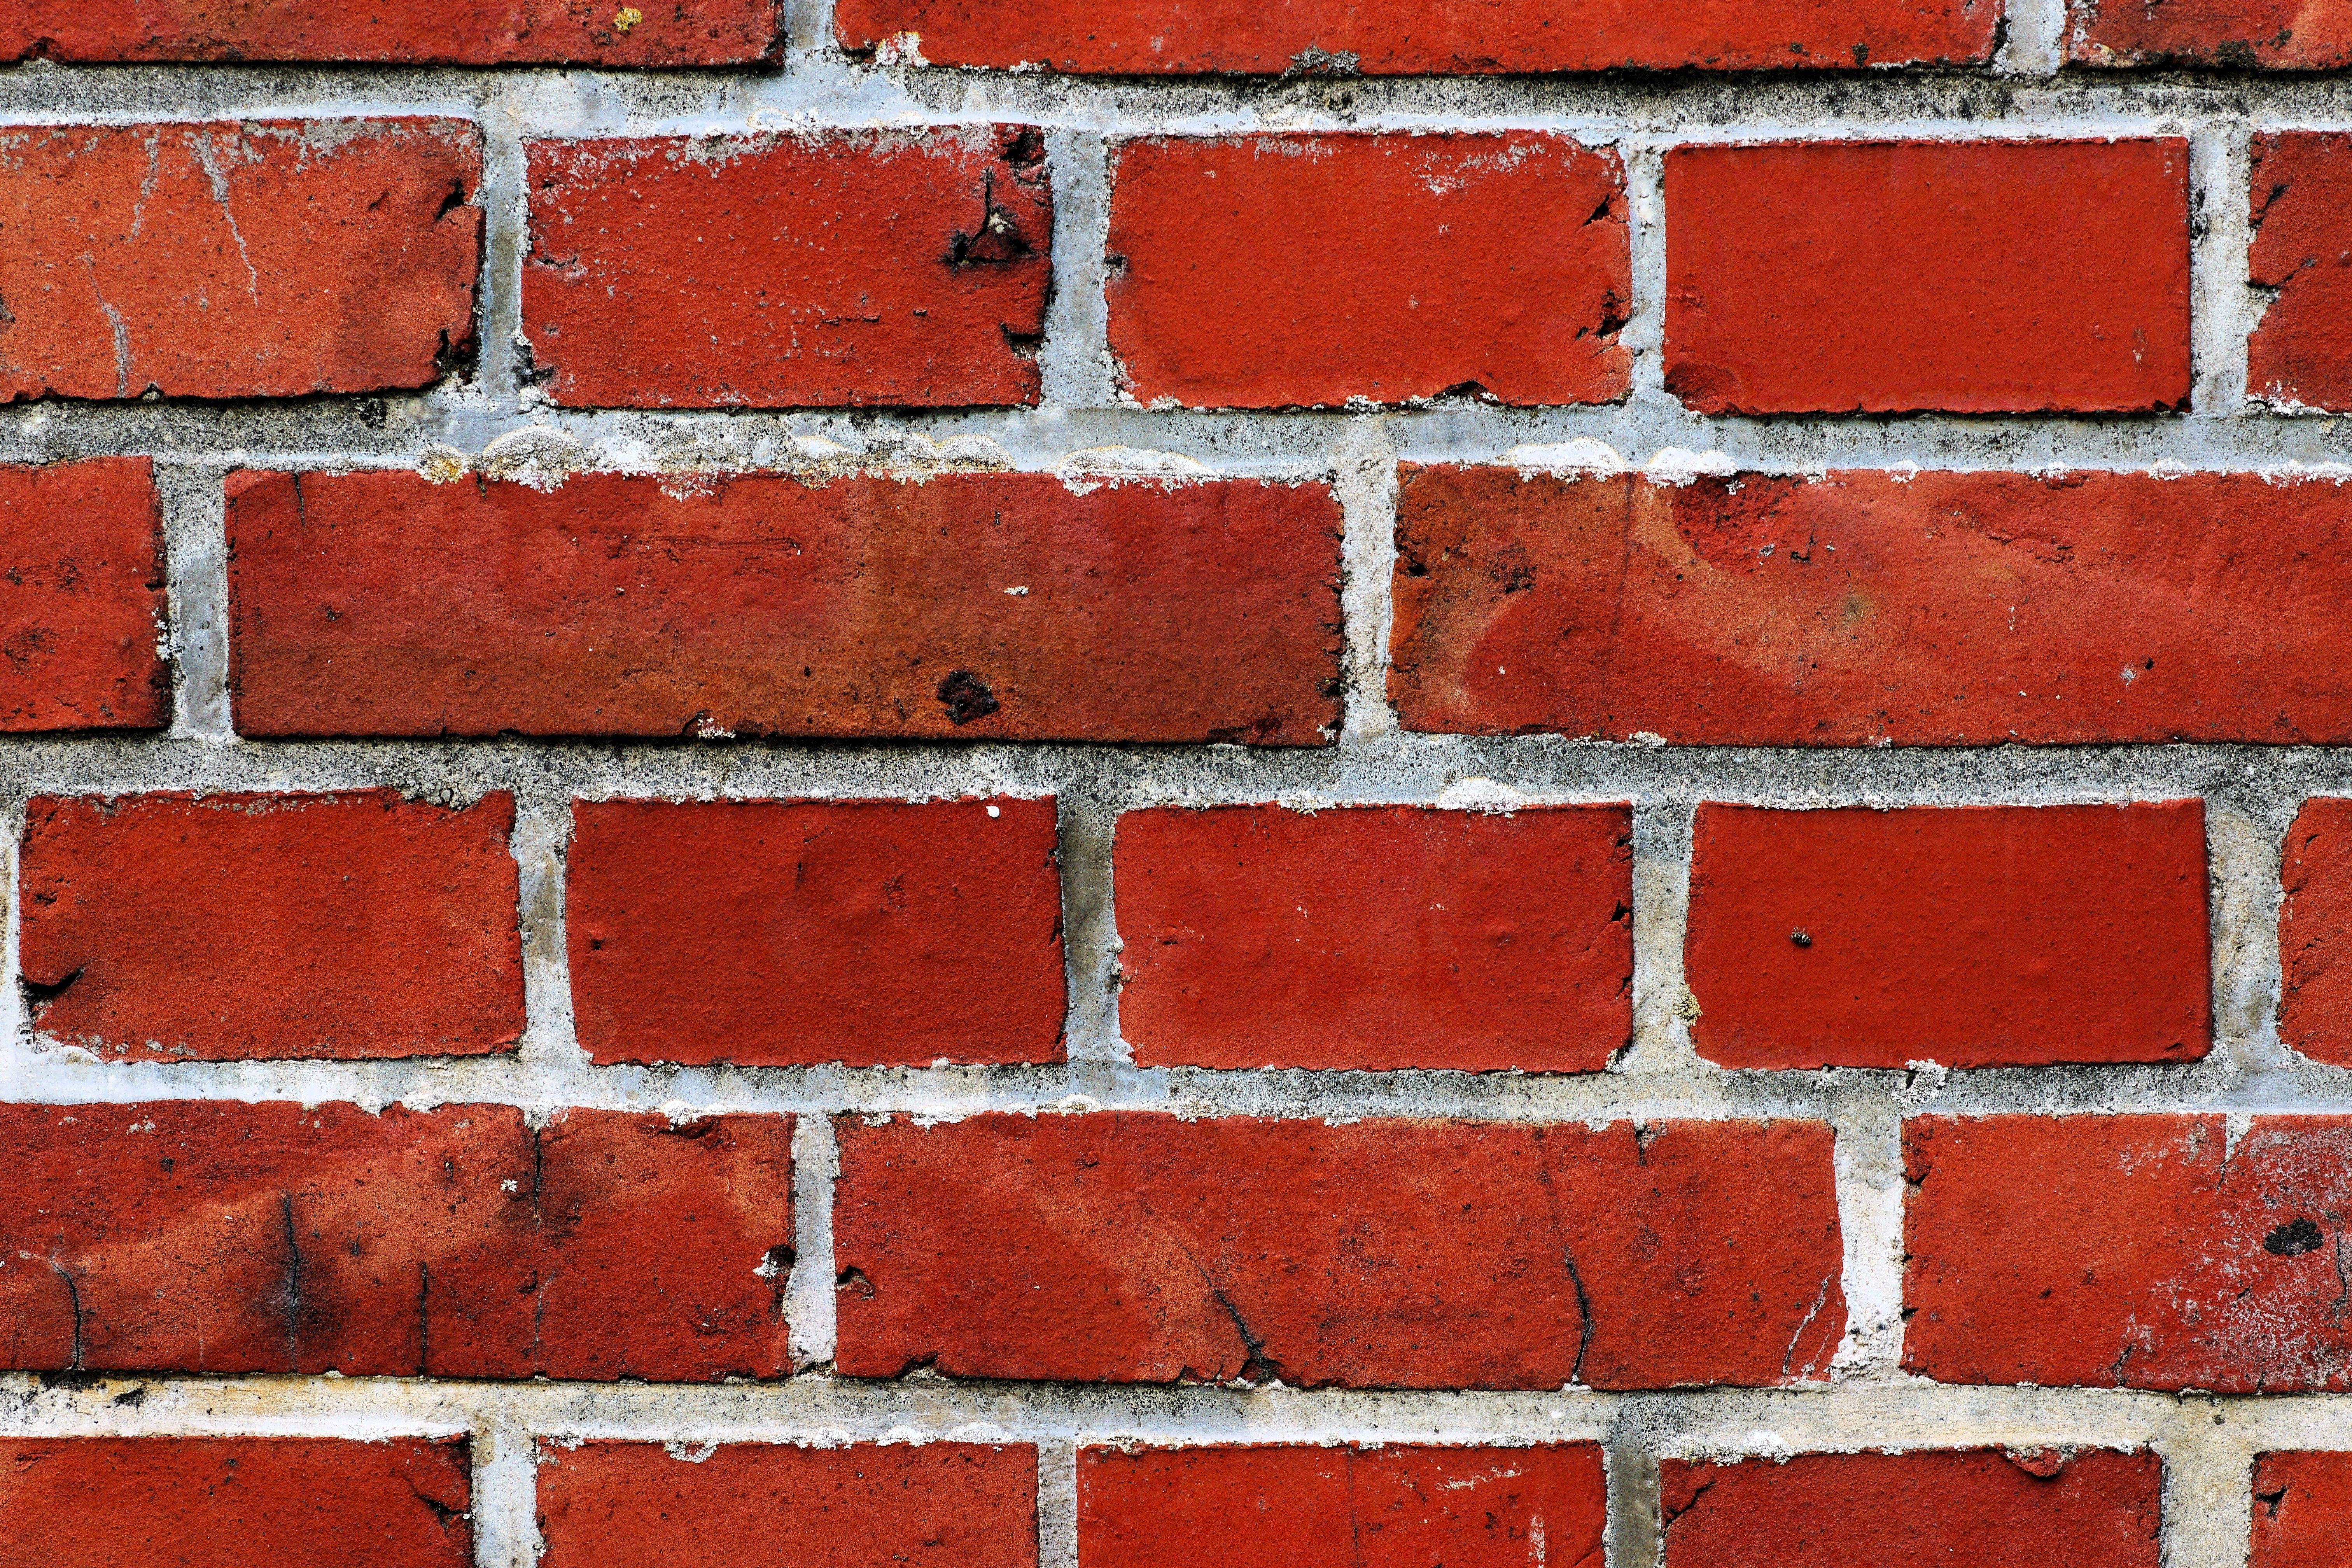 wall-stones-hauswand-structure-51119.jpe